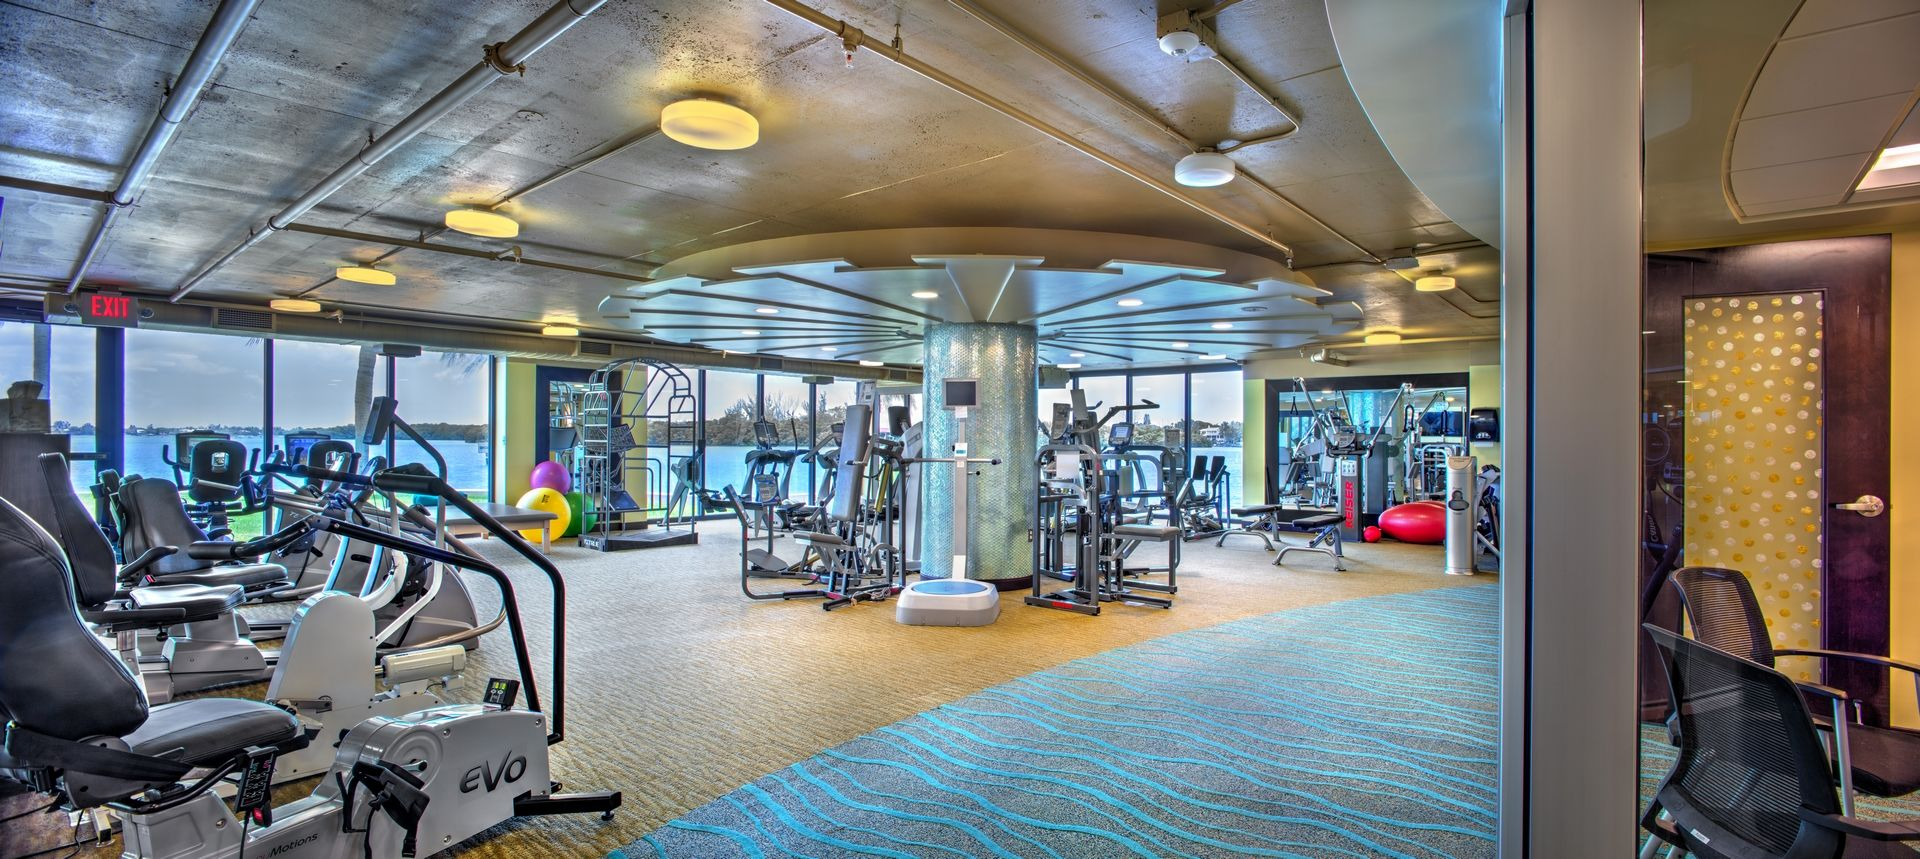 Plymouth harbor wellness center sarasota fl thw design Living room gym